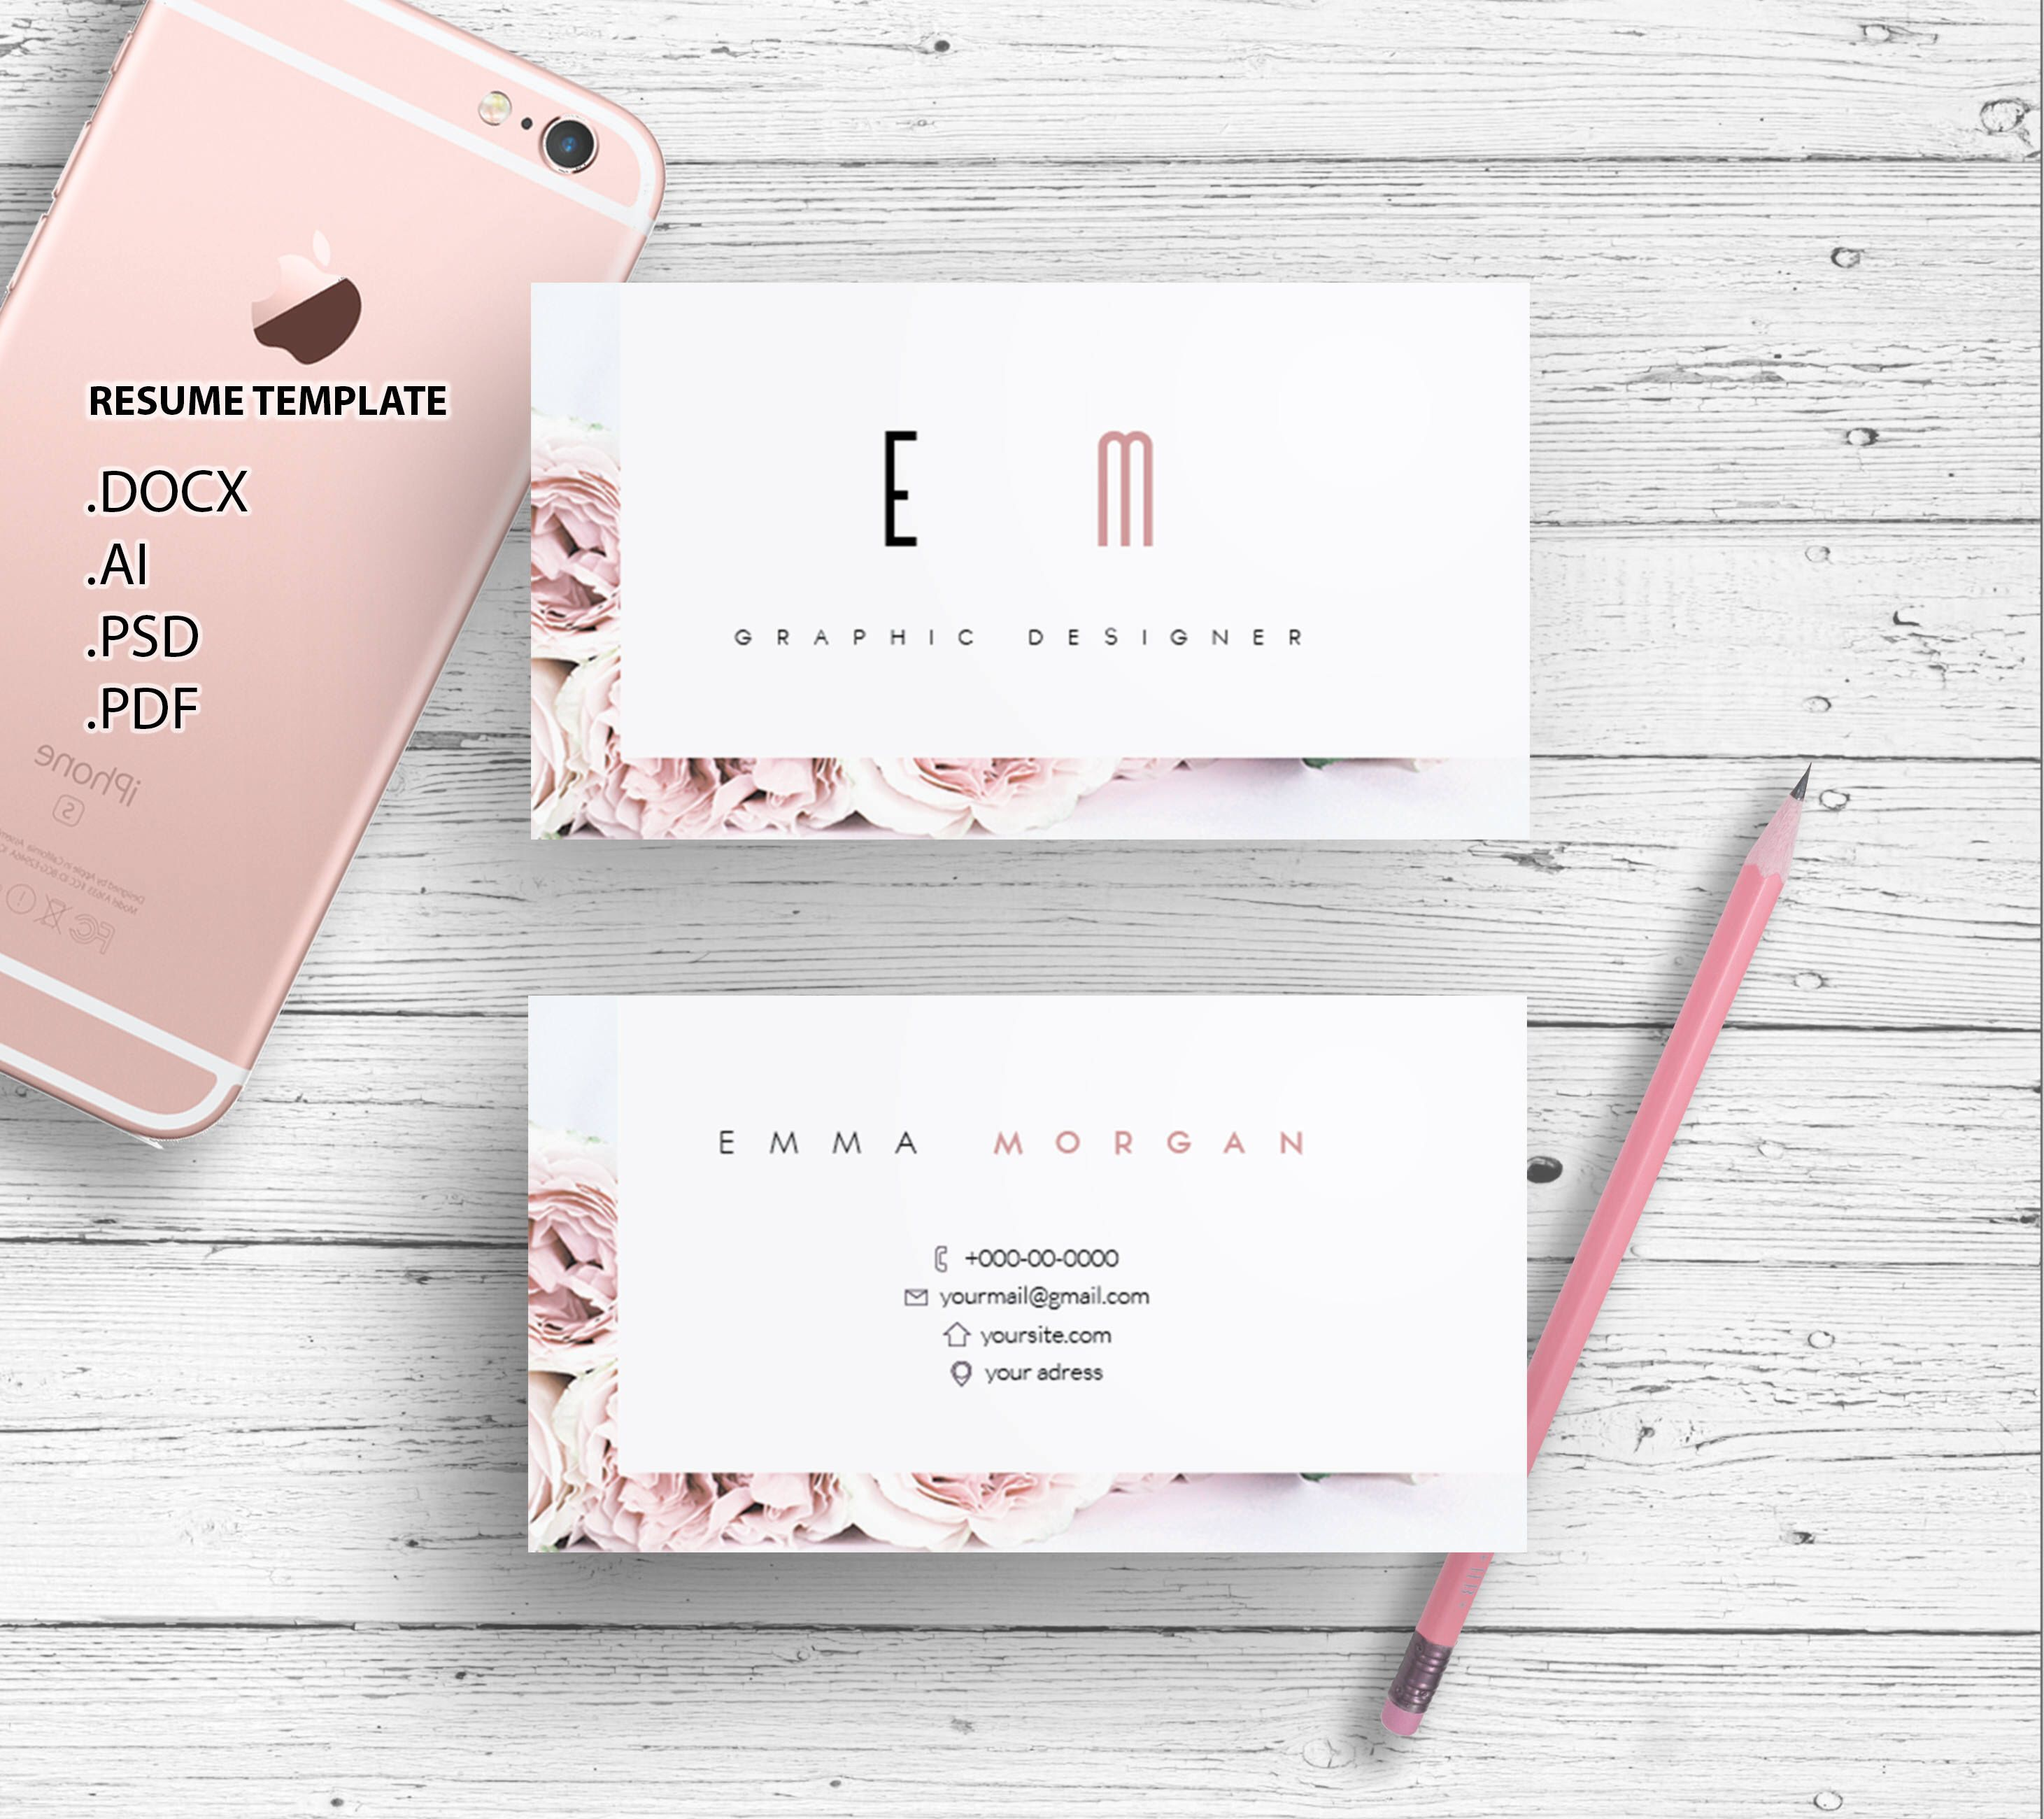 Roses business card template creative card design morden roses business card template creative card design morden business card calling card by showy68template on etsy reheart Choice Image